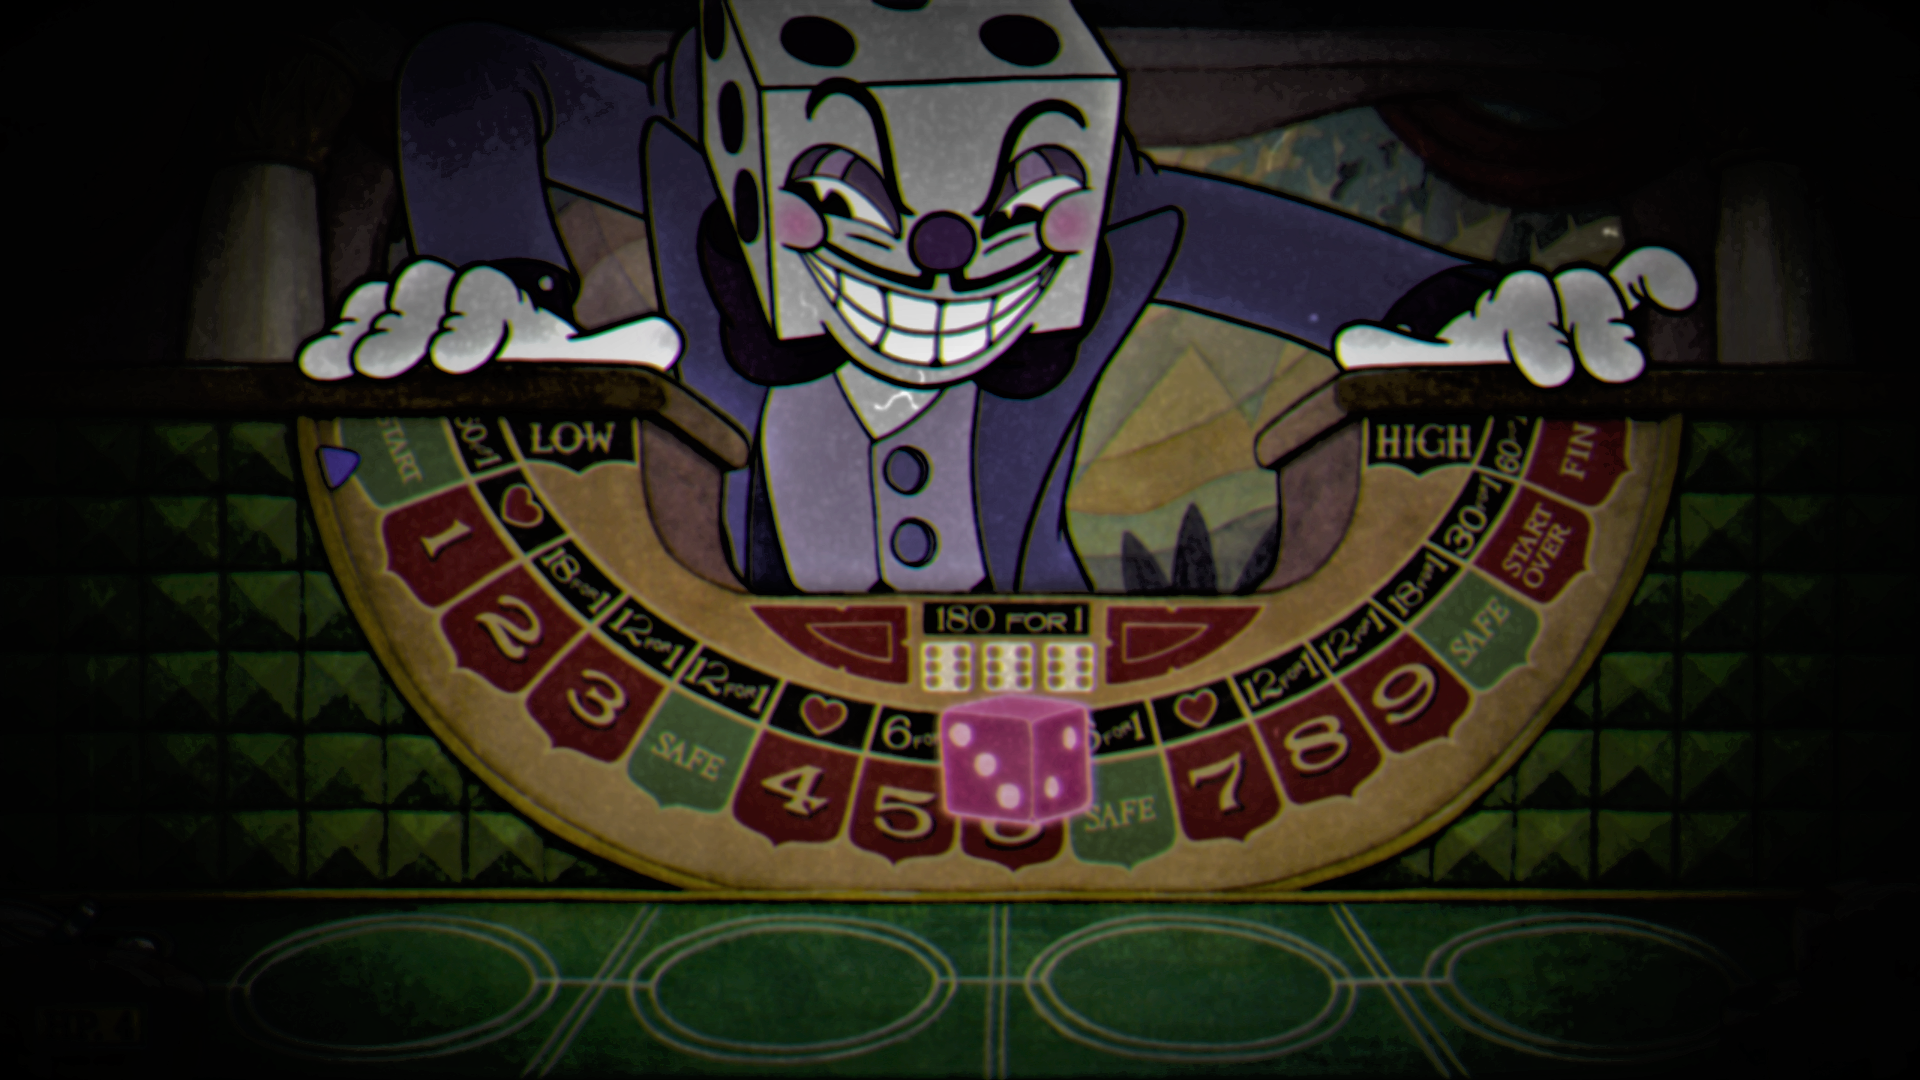 games art casino dice video games spooky dark cuphead (video game) king dice